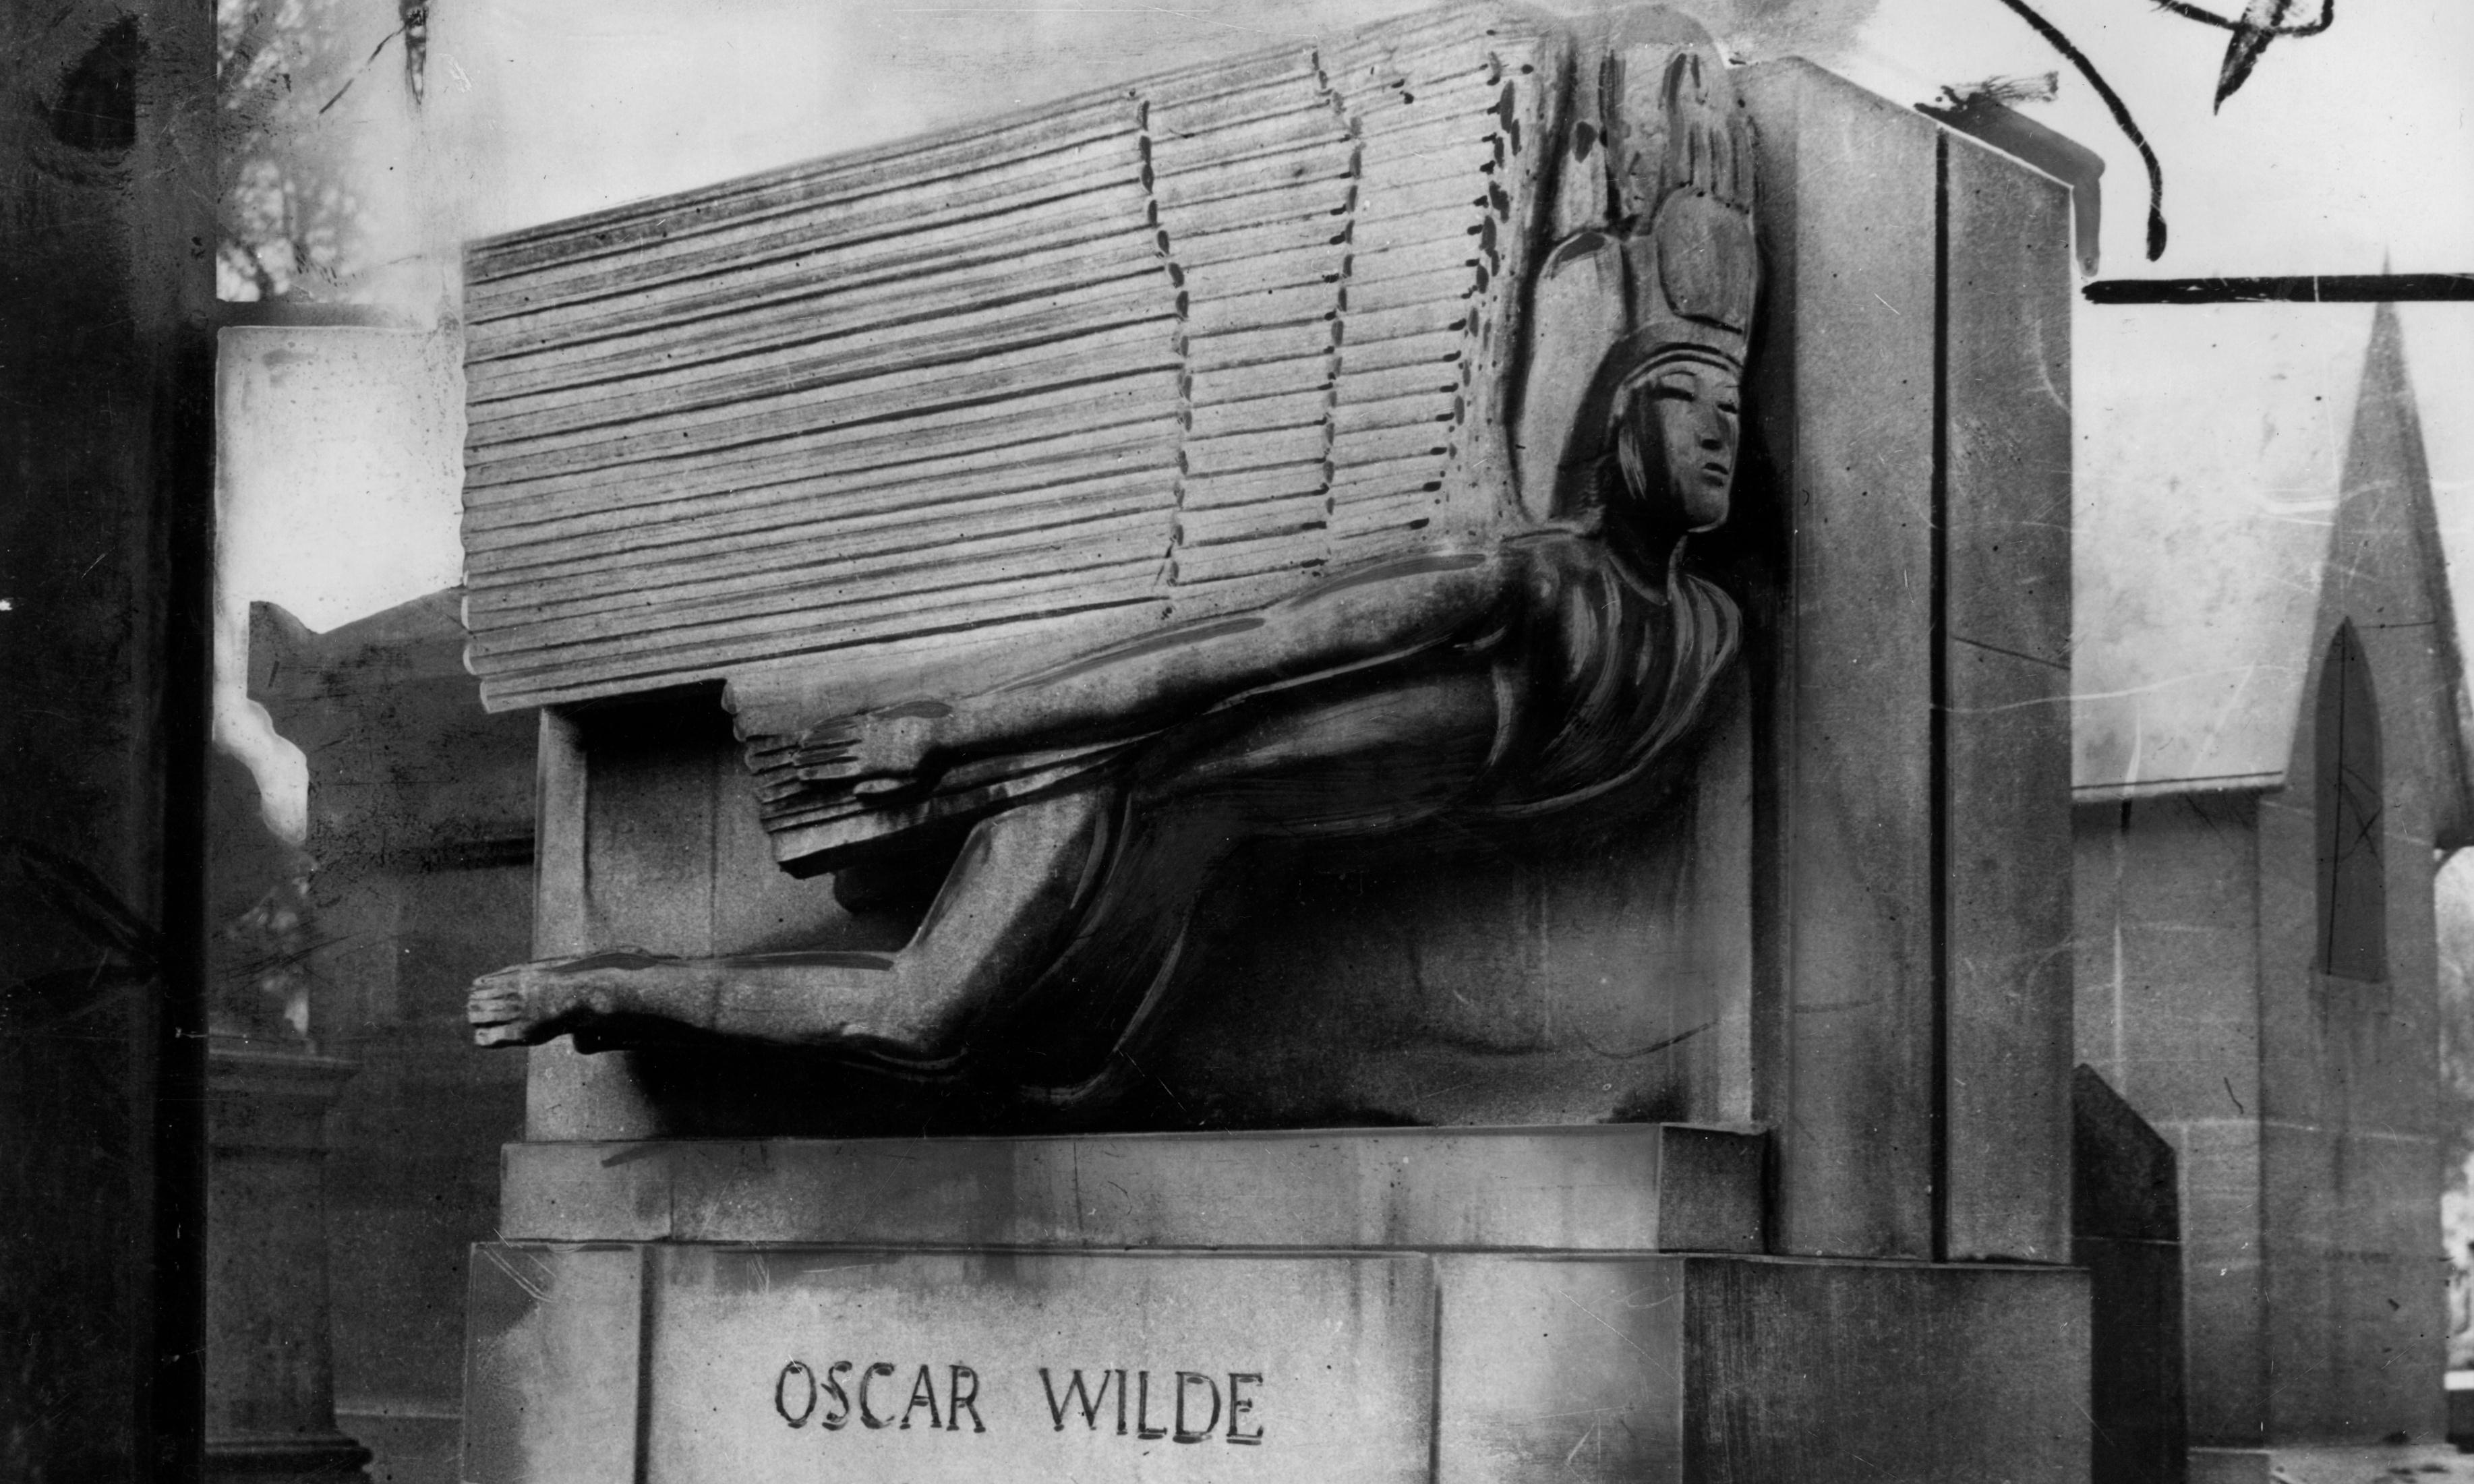 Memorial for Oscar Wilde's grave in Paris – archive, 12 February 1912